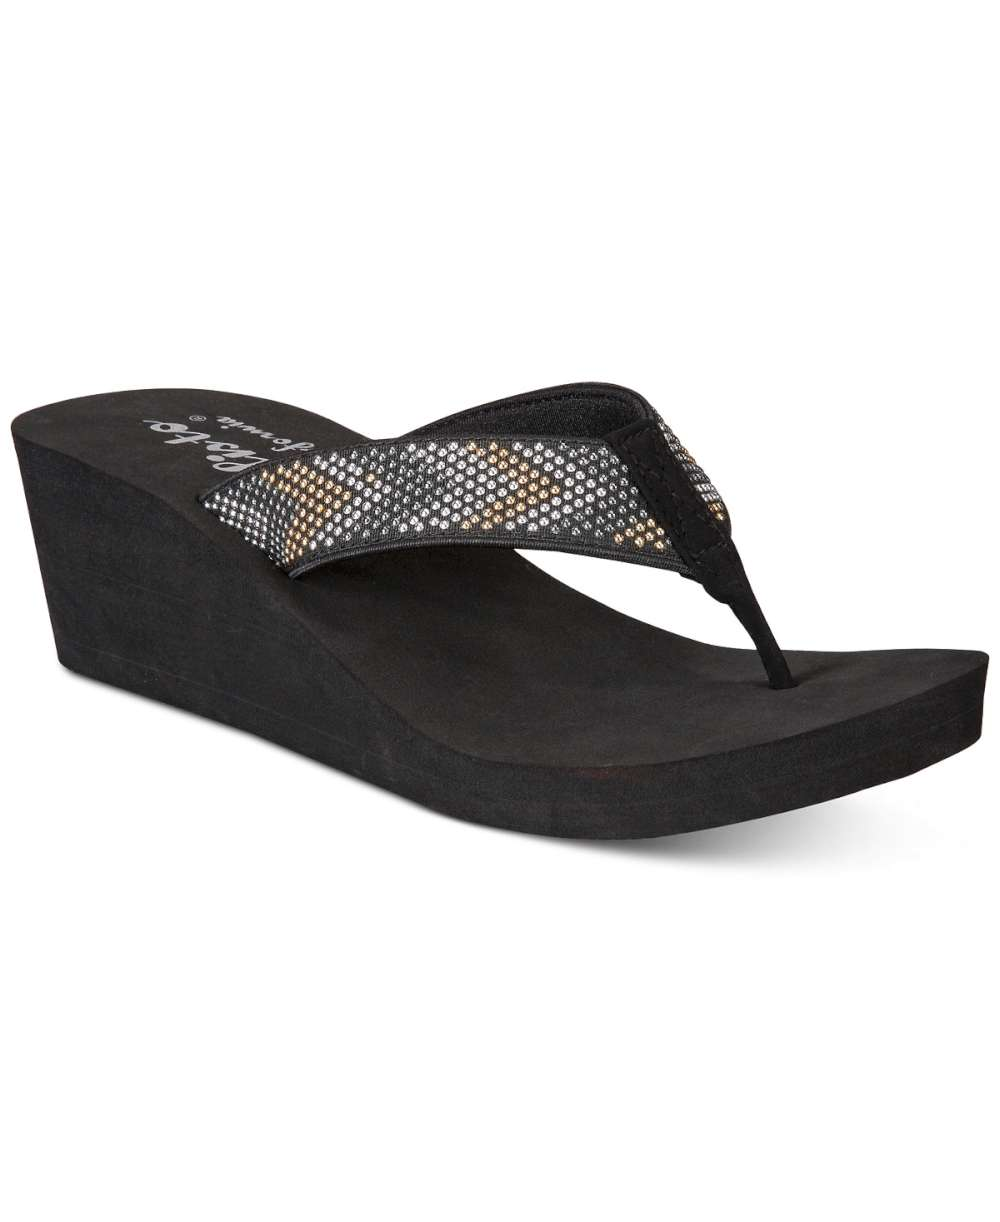 7573cebbf5cc87 Details about Callisto Womens Jester Open Toe Casual Slide Sandals